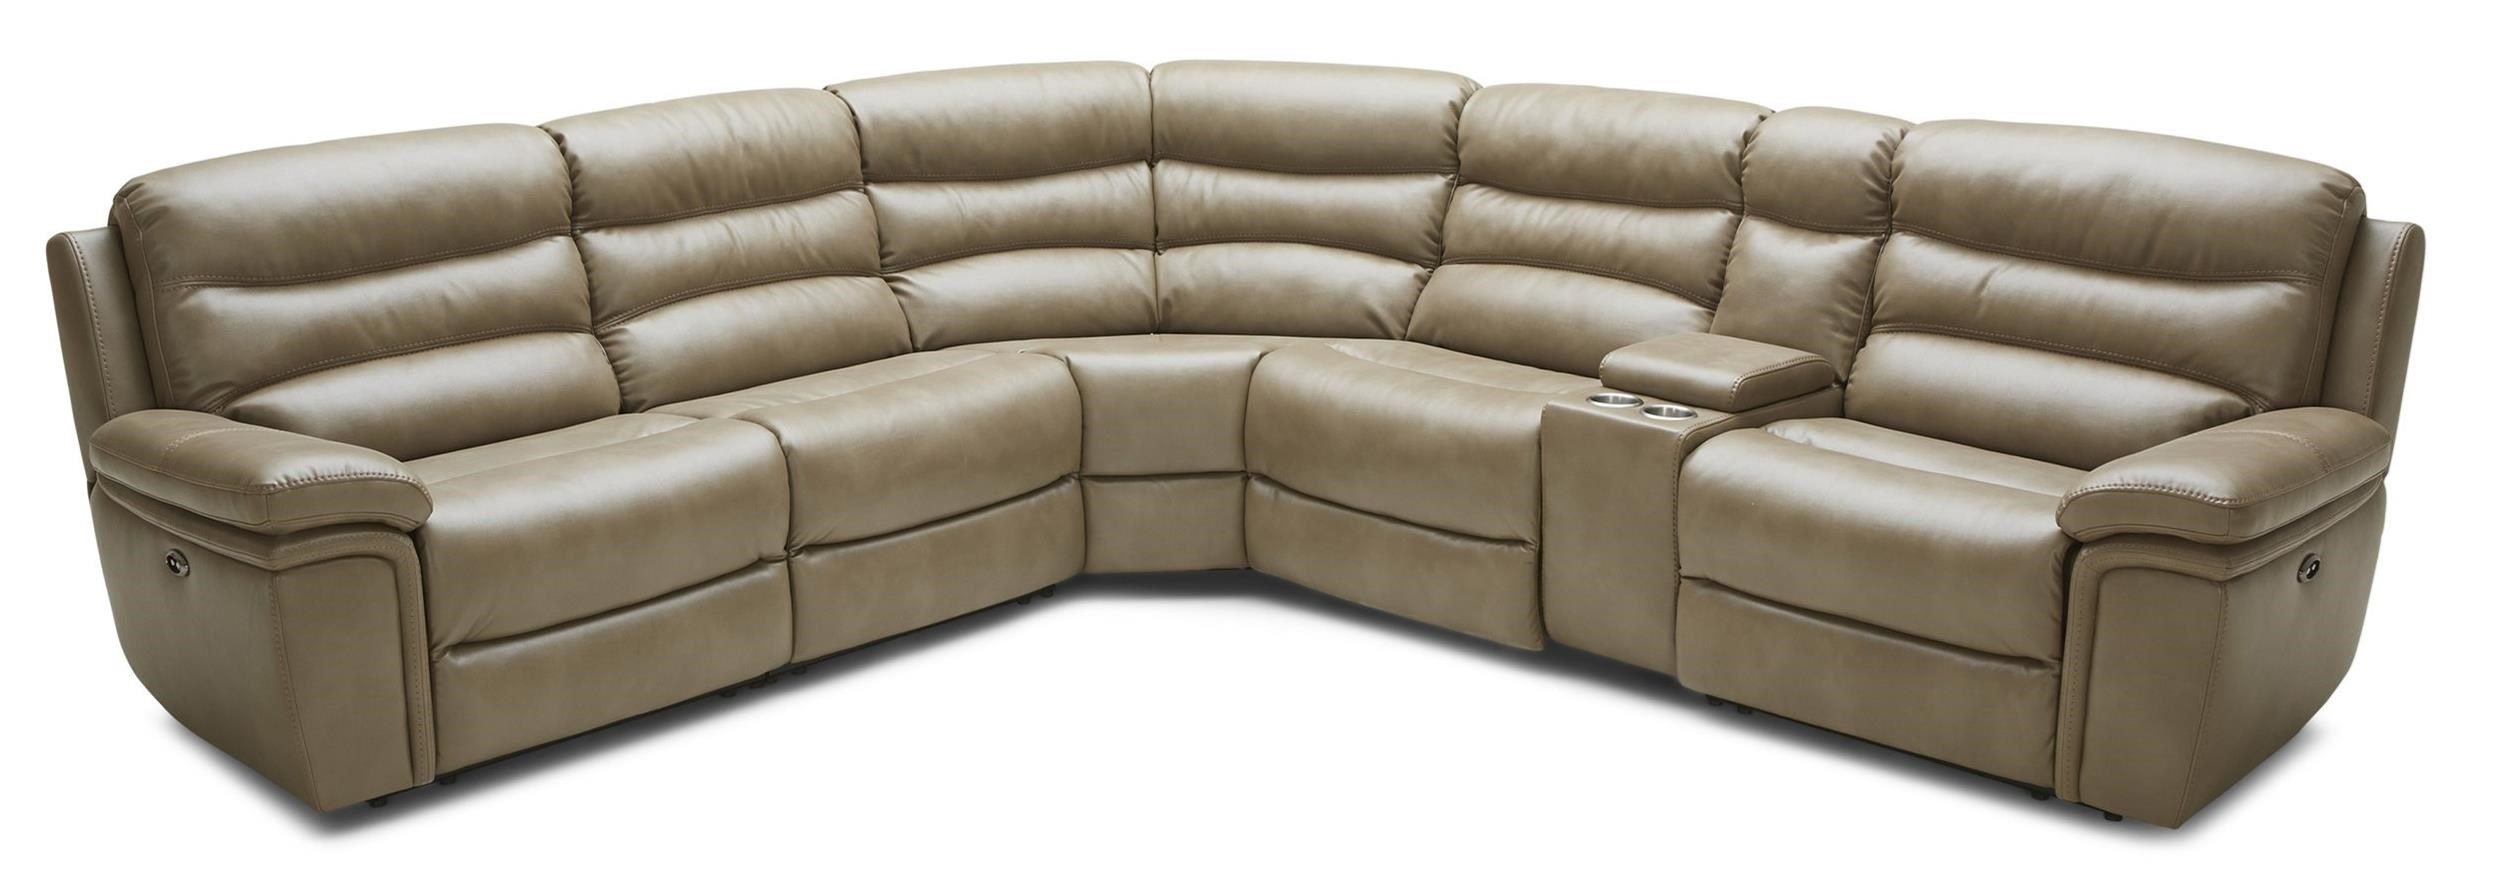 Kuka Home KM0086 Pc Reclining Sectional Sofa